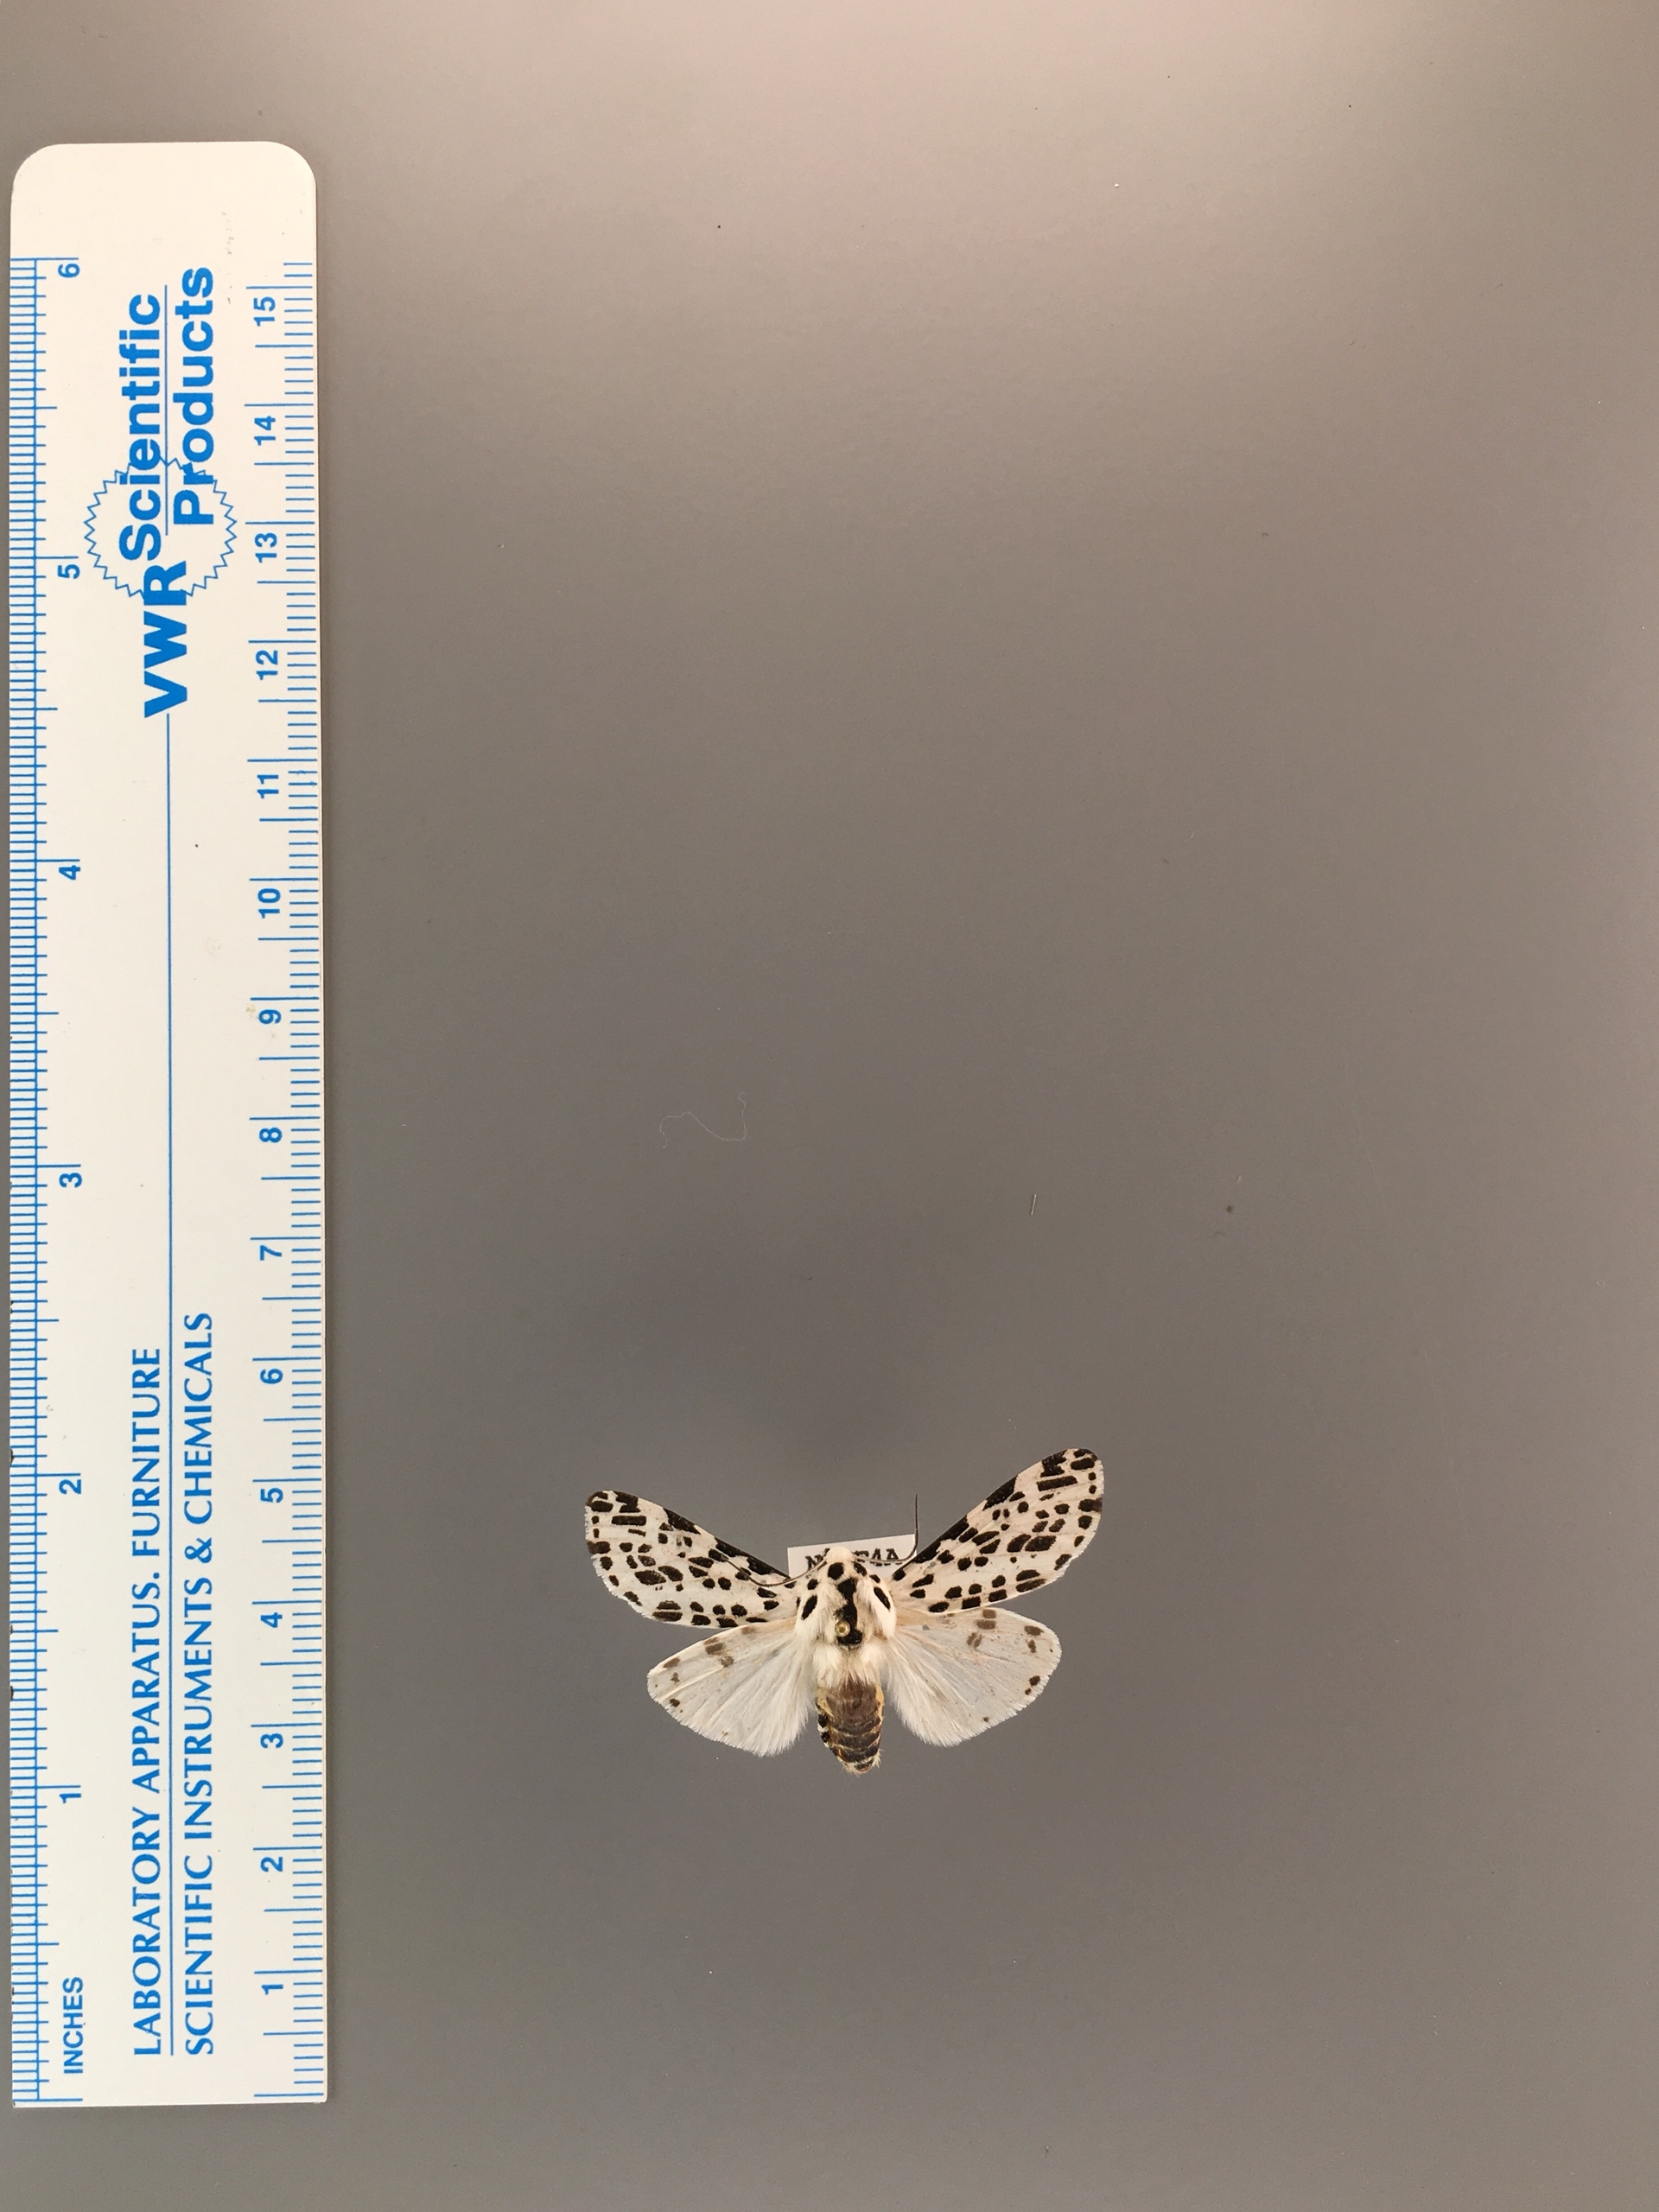 Hypercompe permaculata image